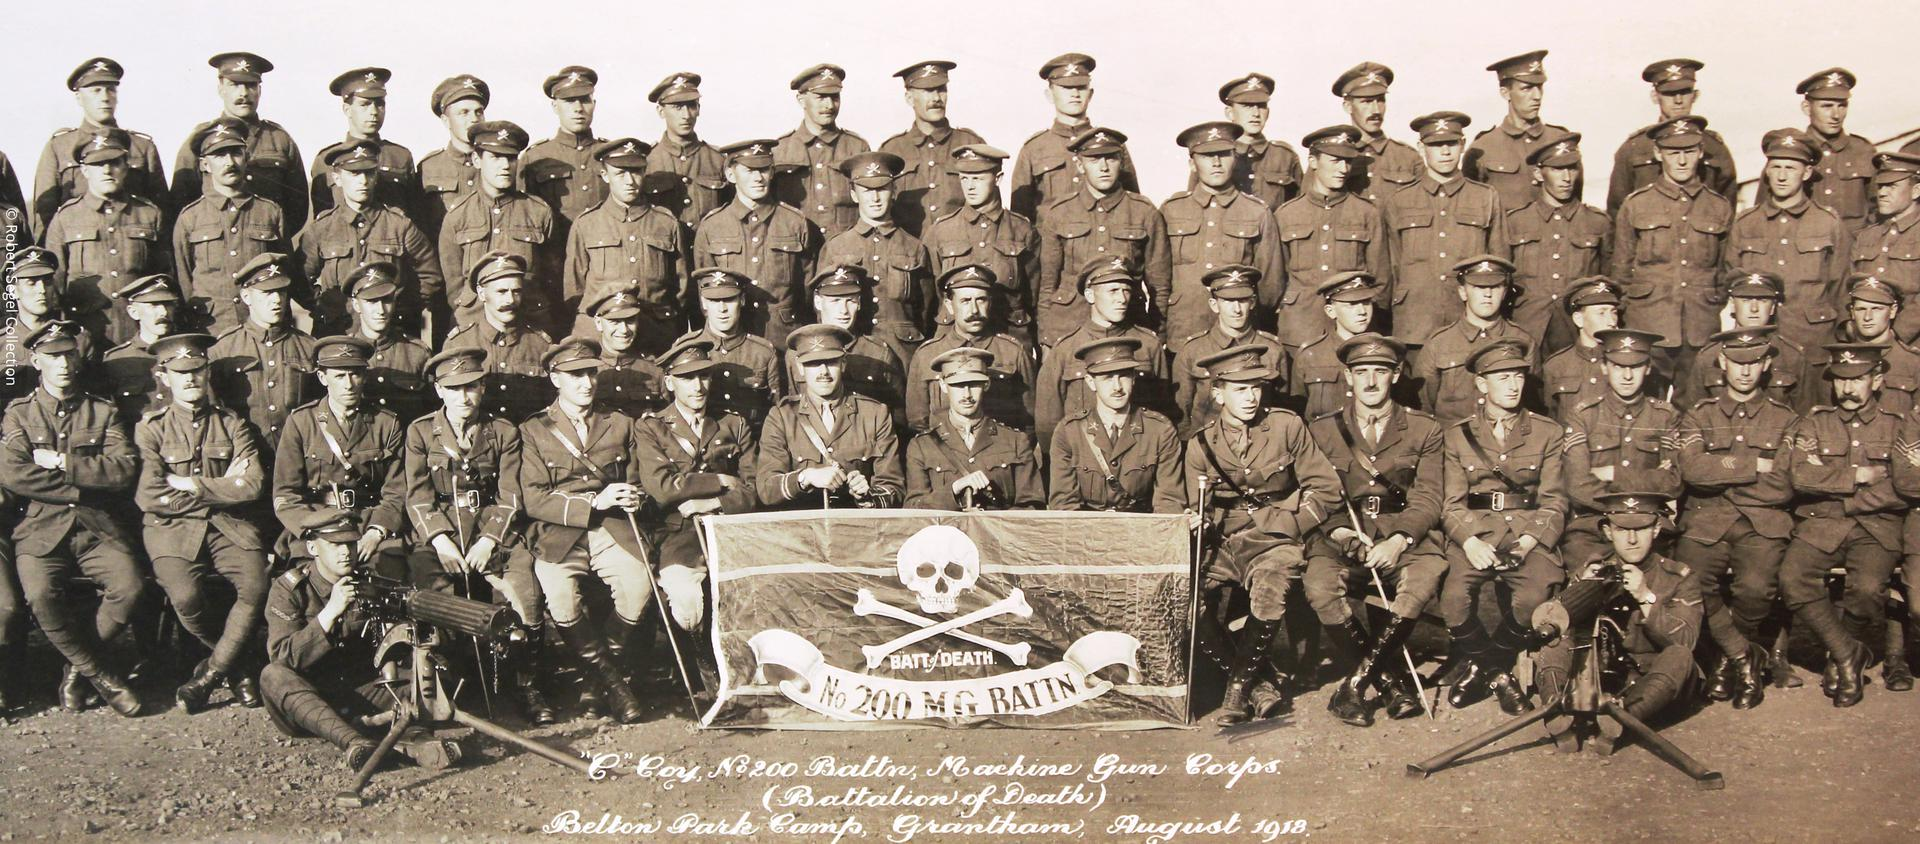 Unit photograph of the 200th 'Battalion of Death', showing their threatening unit insignia.